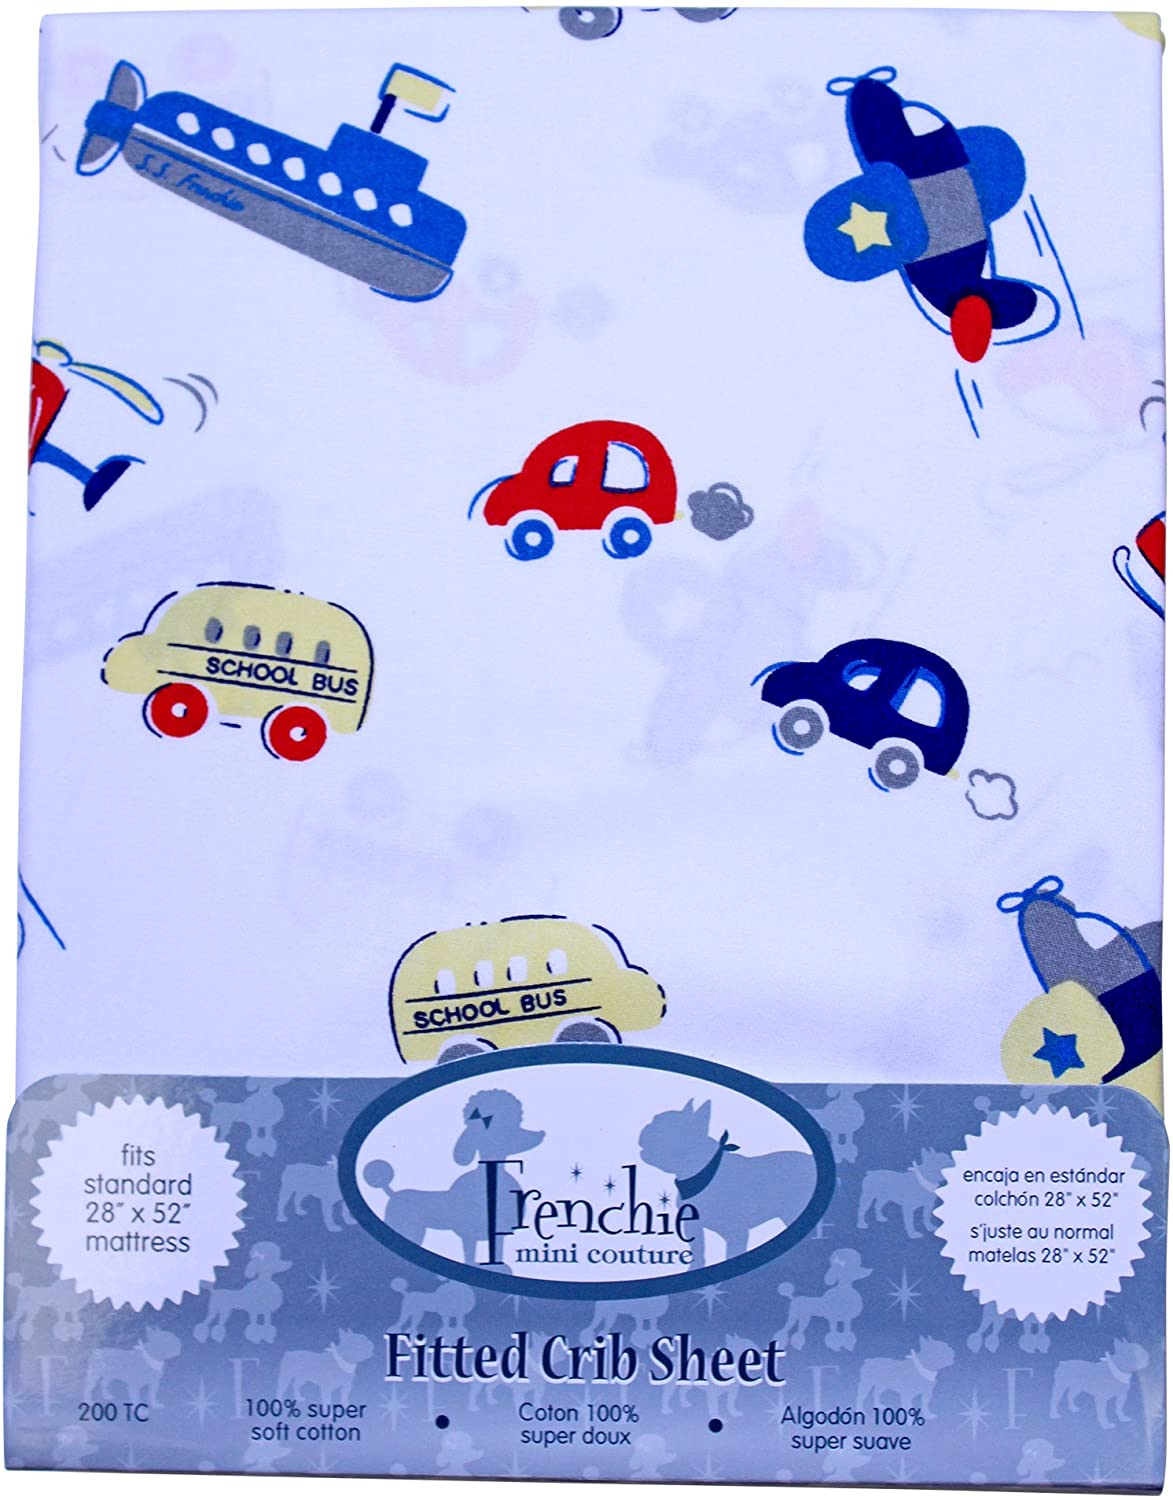 Fitted 71.12 X 132.08 cm Planes Cars Boats Crib Sheets by Frenchie Mini Couture